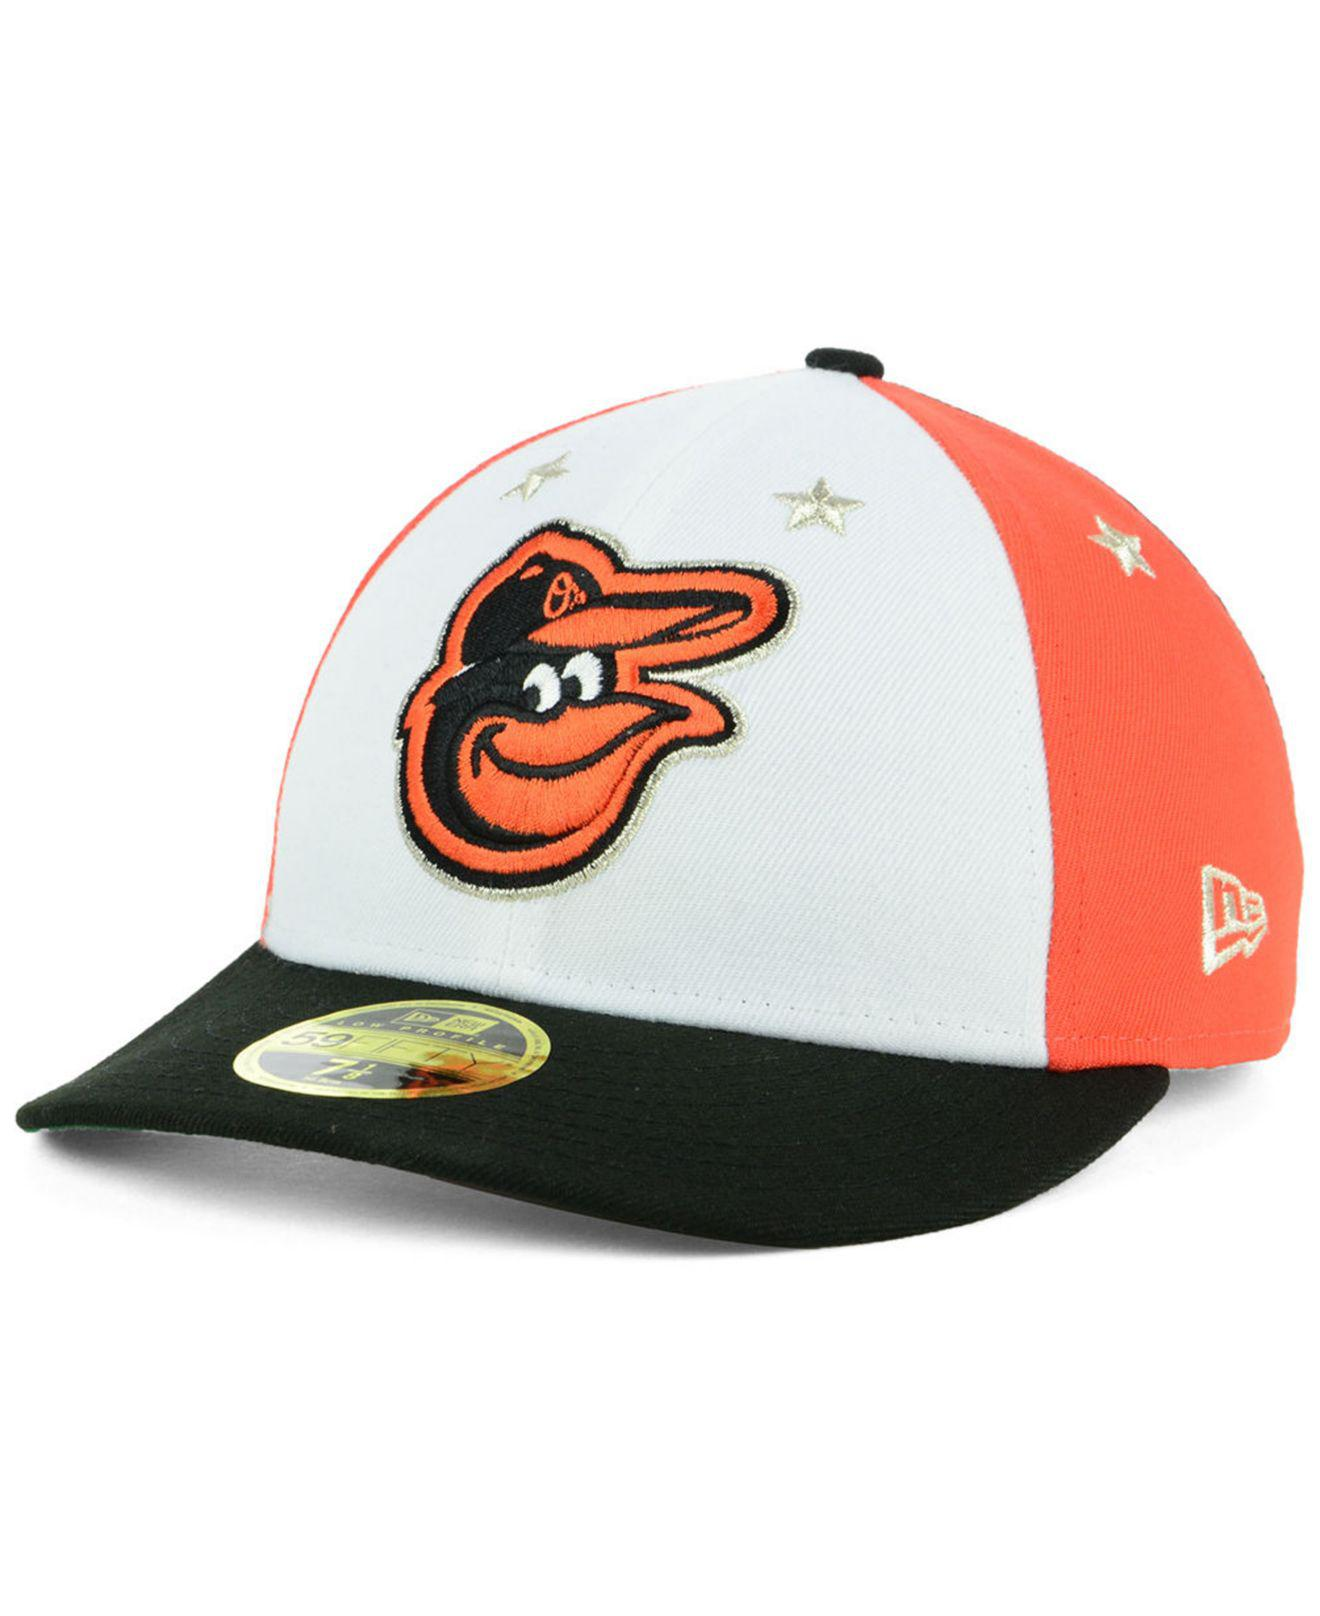 the best attitude 93c60 5b874 KTZ Baltimore Orioles All Star Game Patch Low Profile 59fifty Fitted ...